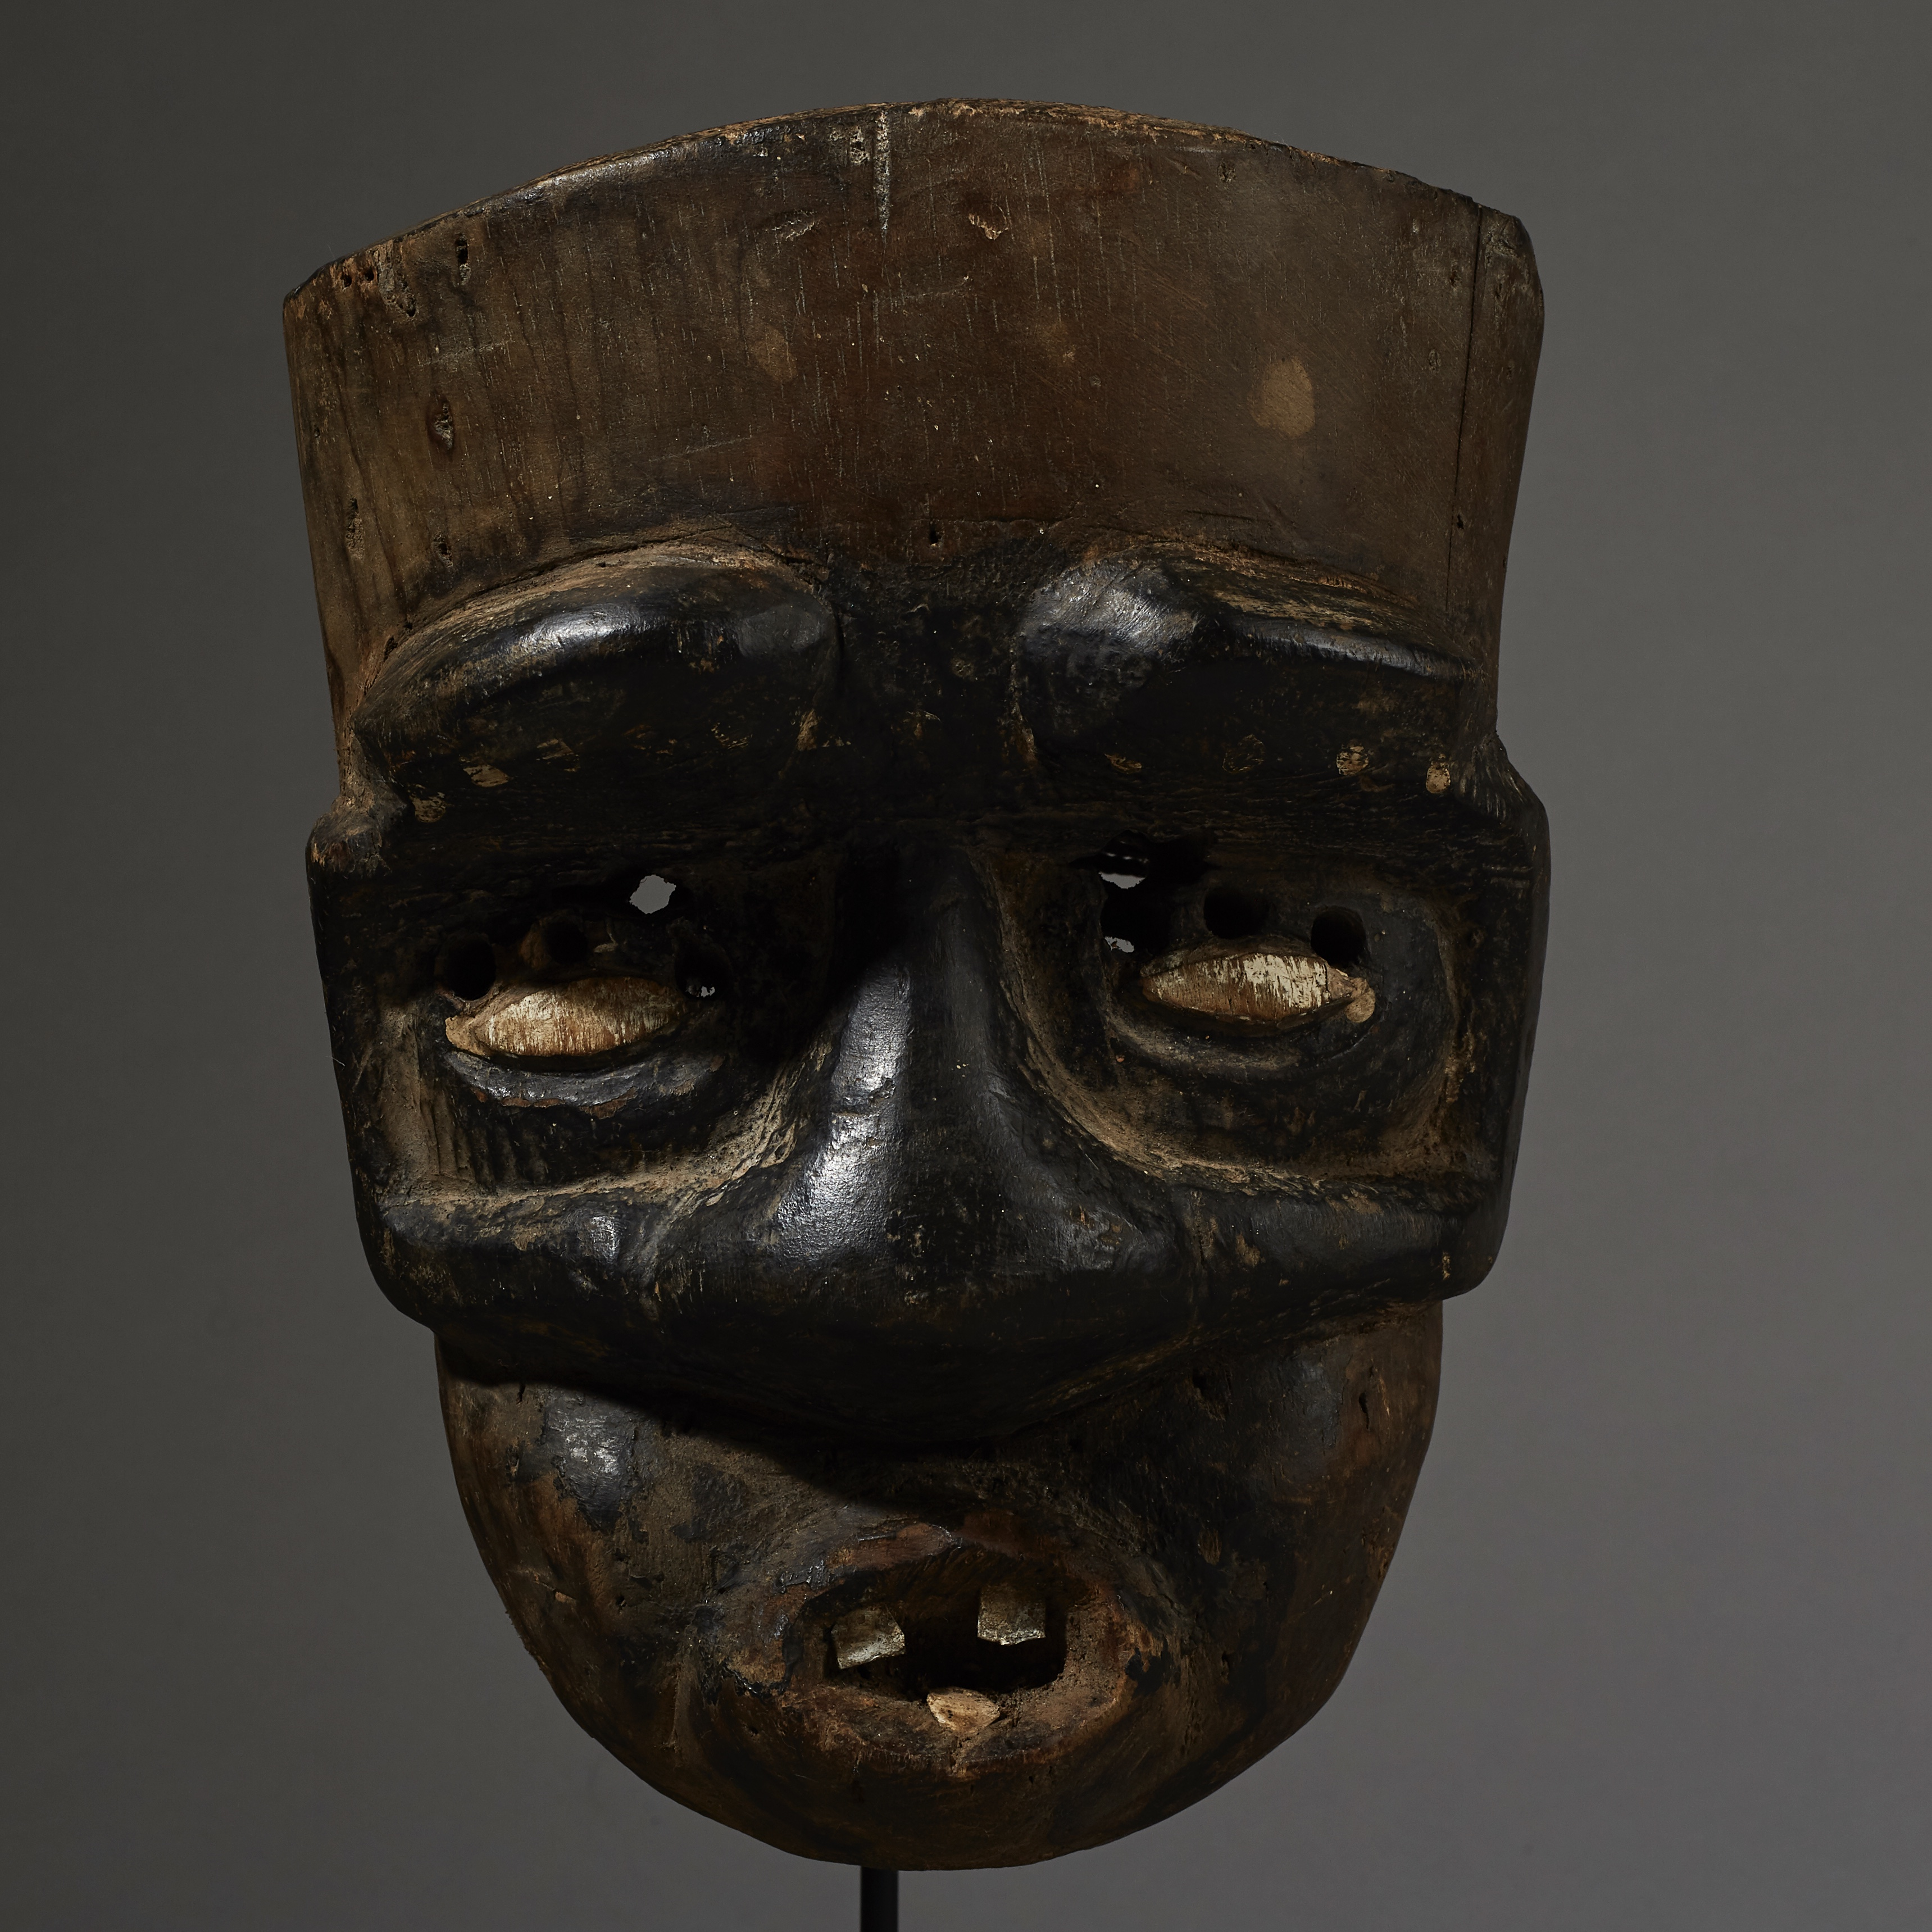 AN UNUSUAL GUERRE MASK WITH ASSYMETRICAL FEATURES, IVORY COAST ( No 2596 )